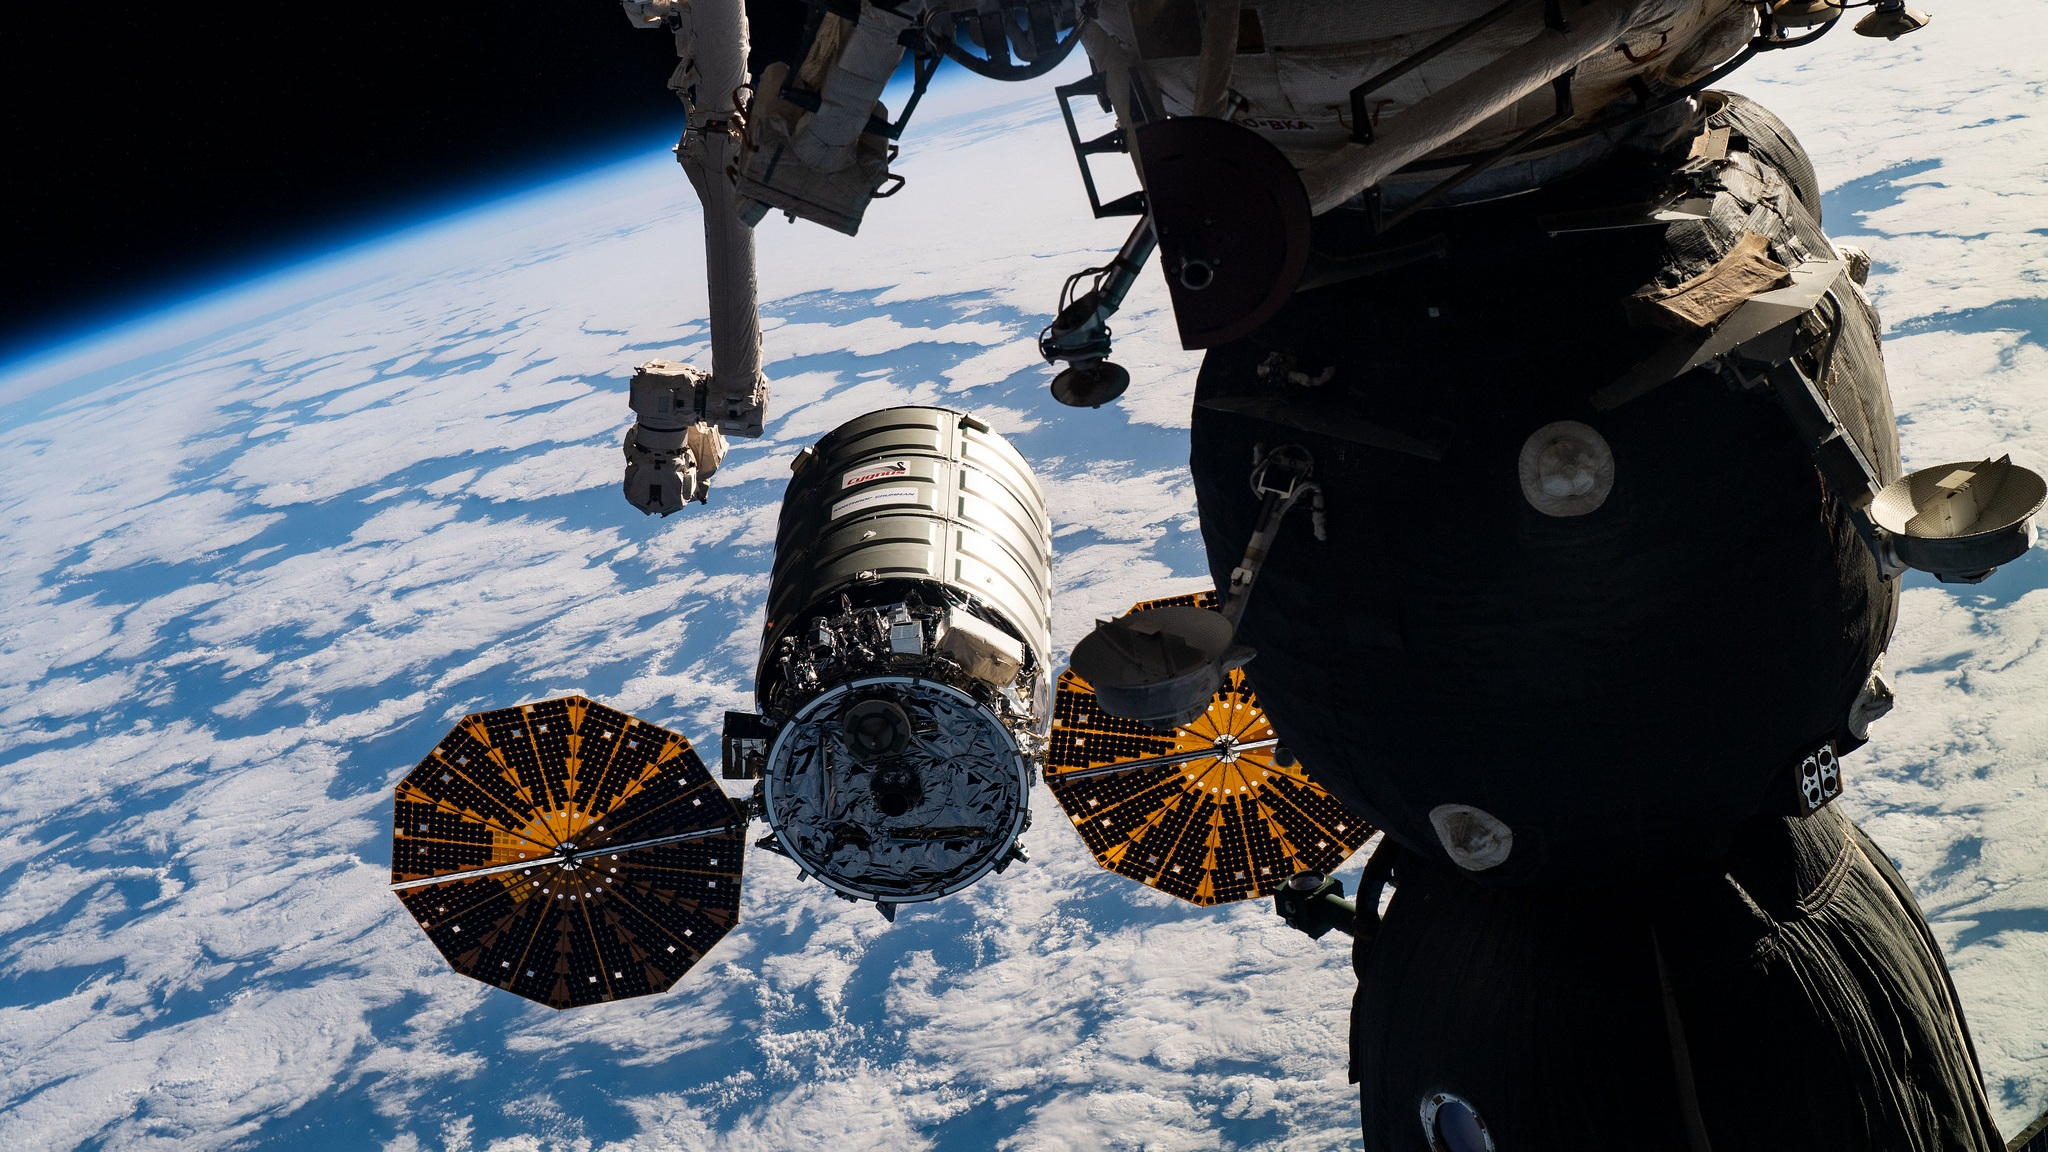 The NG-11 Cygnus spacecraft as it rendezvoused with the ISS in April 2019. Credit: NASA